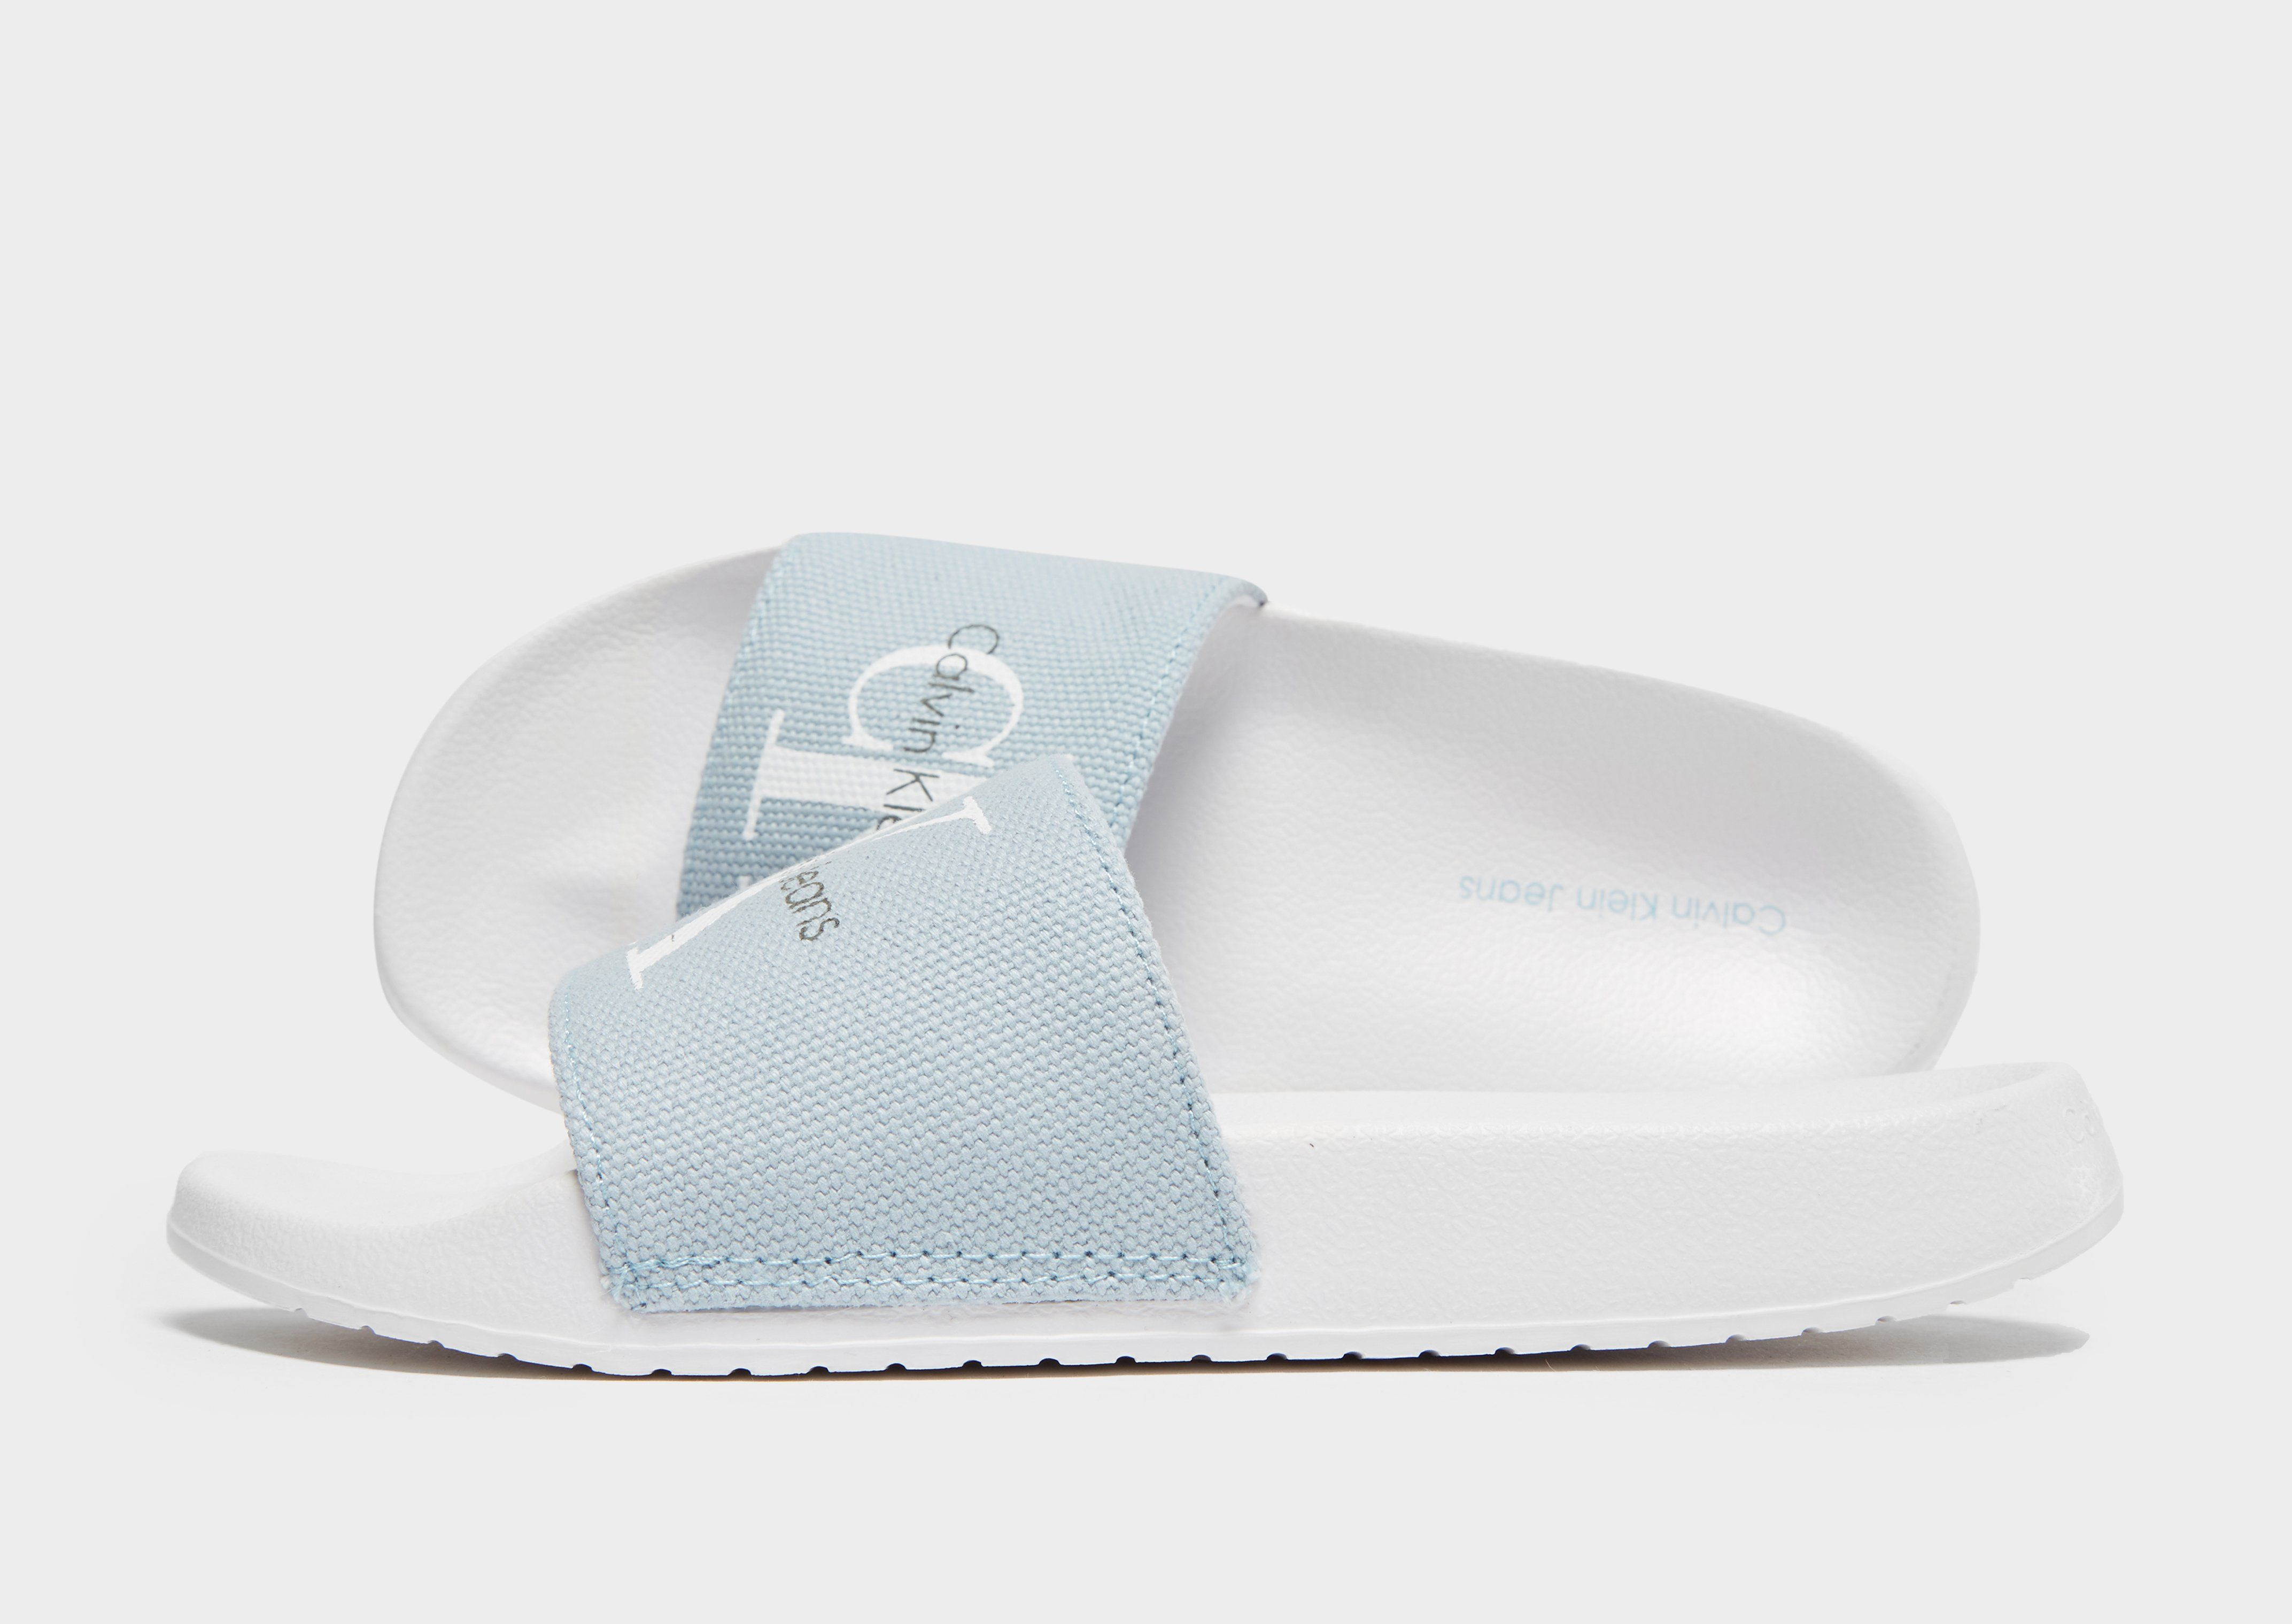 Calvin Klein Jeans Chantal Slides Women's by Jd Sports